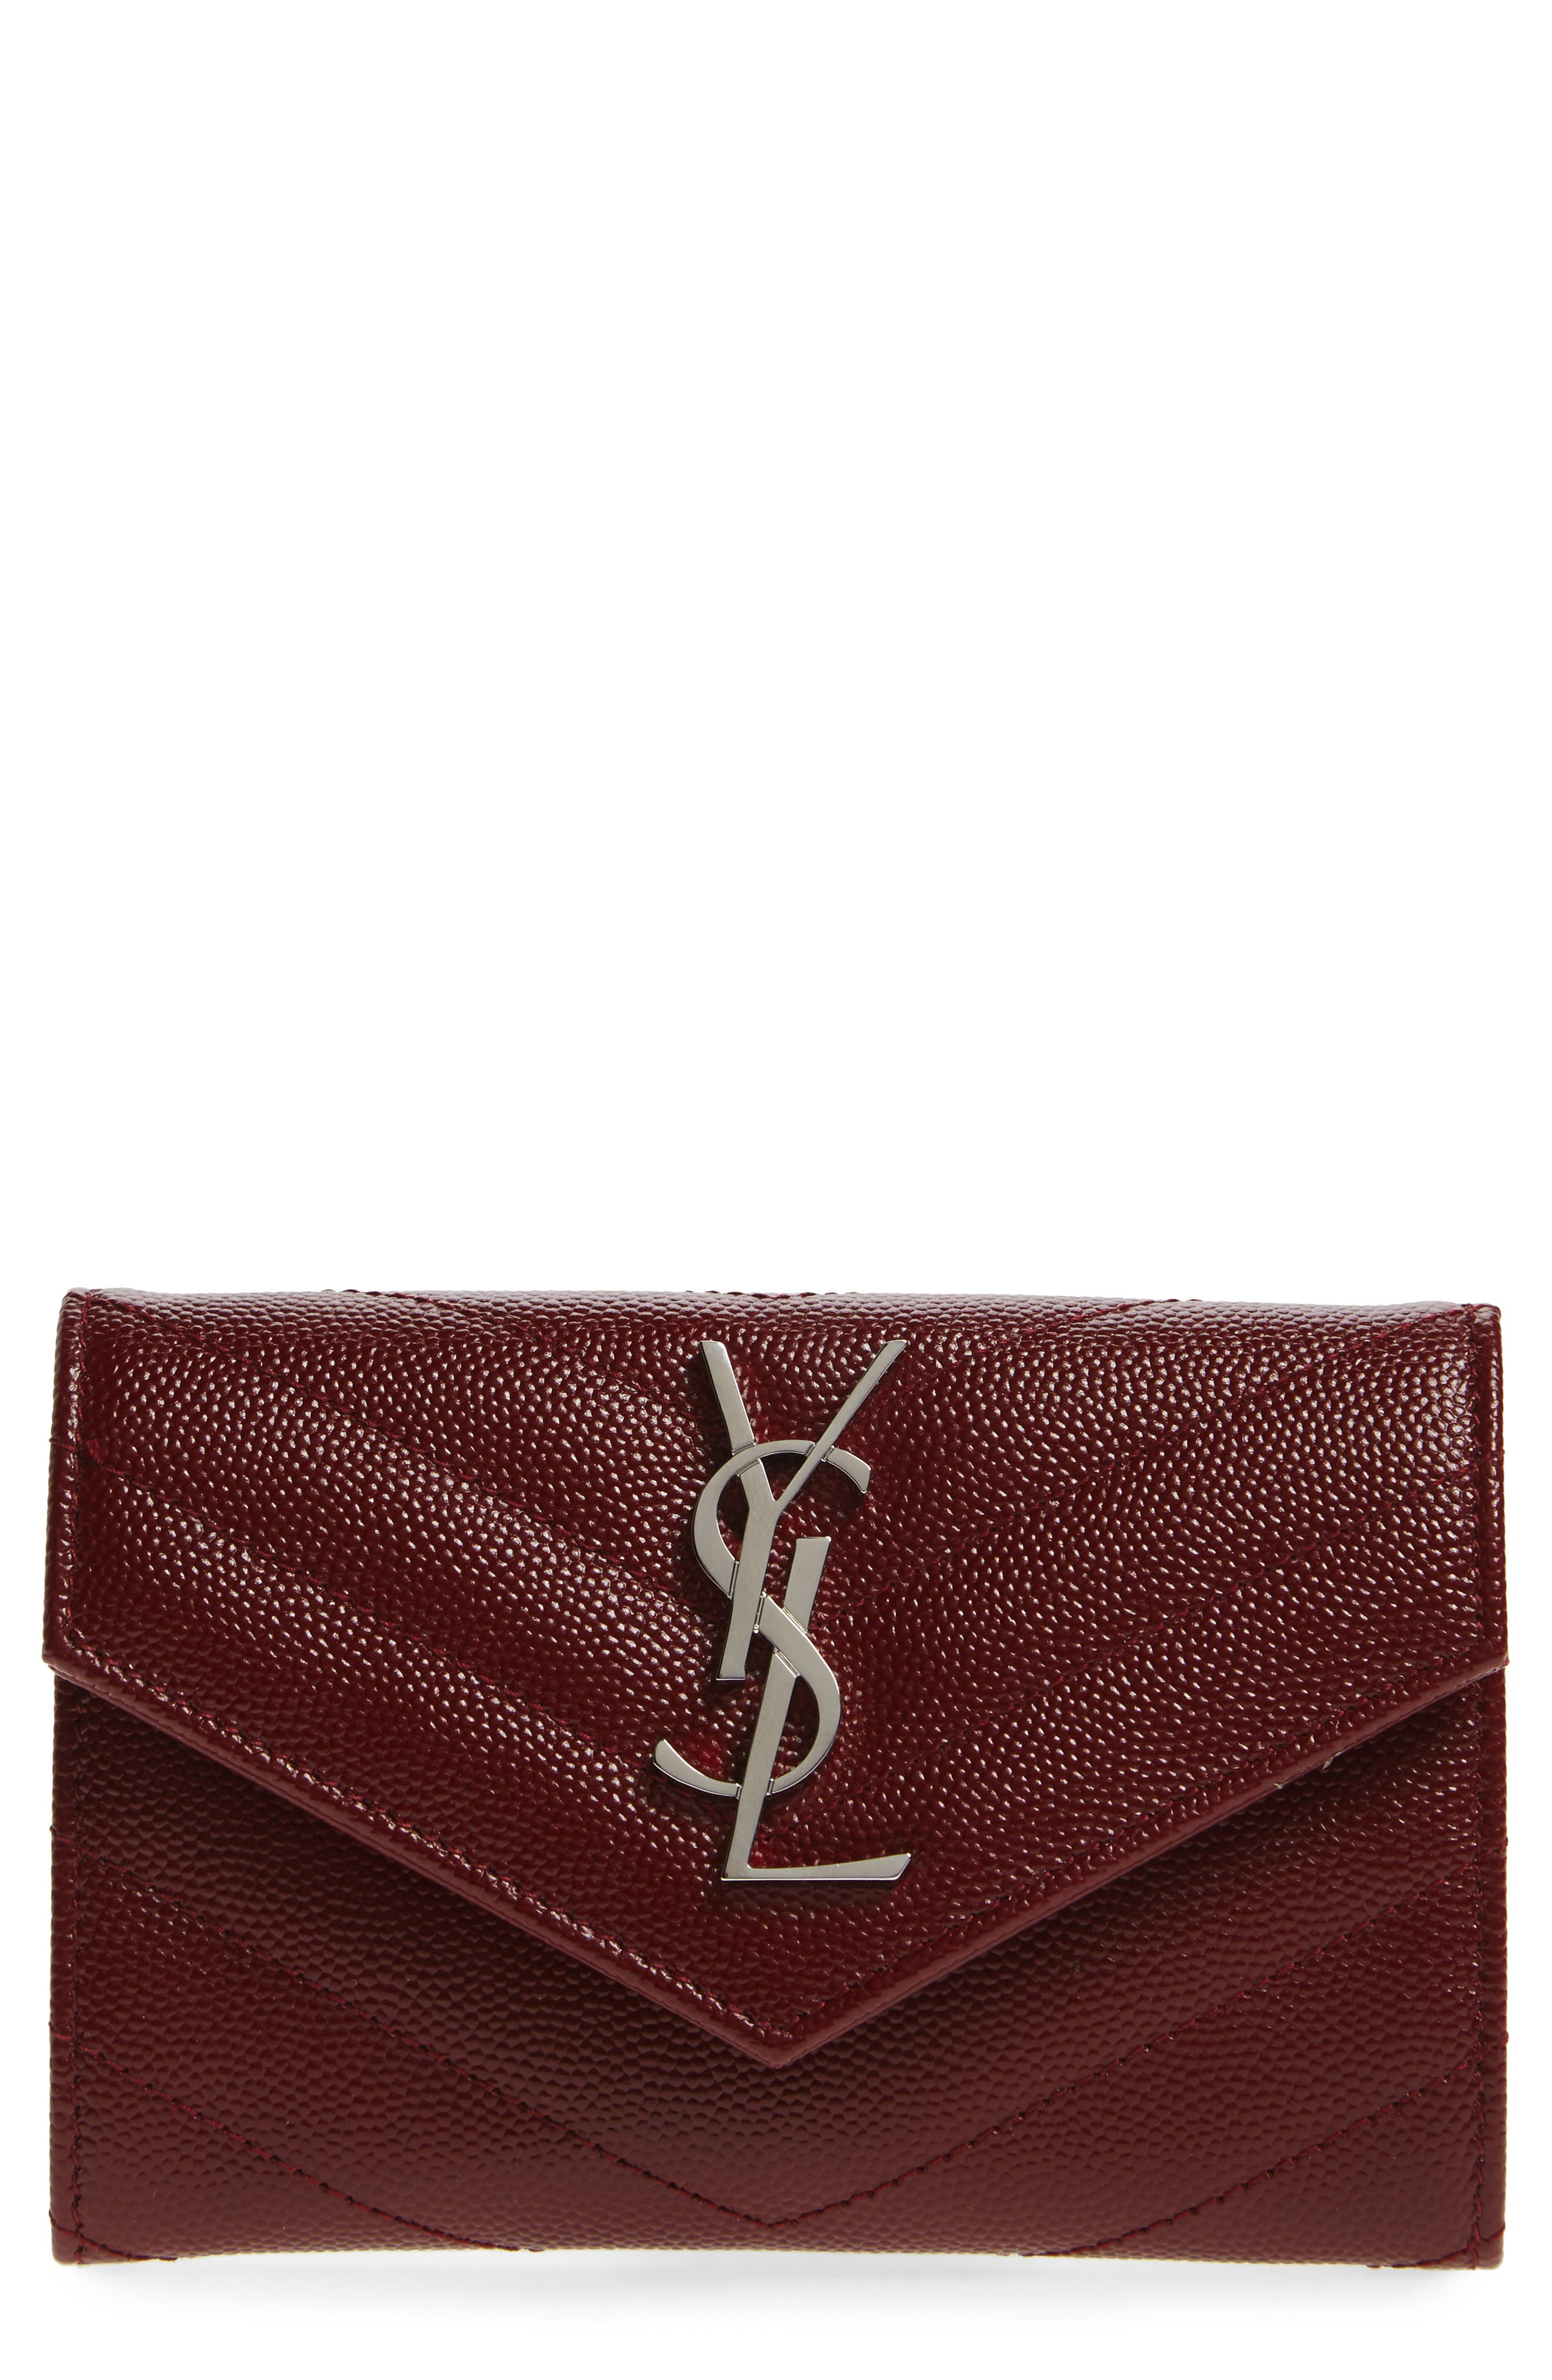 'Small Monogram' Leather French Wallet,                             Main thumbnail 5, color,